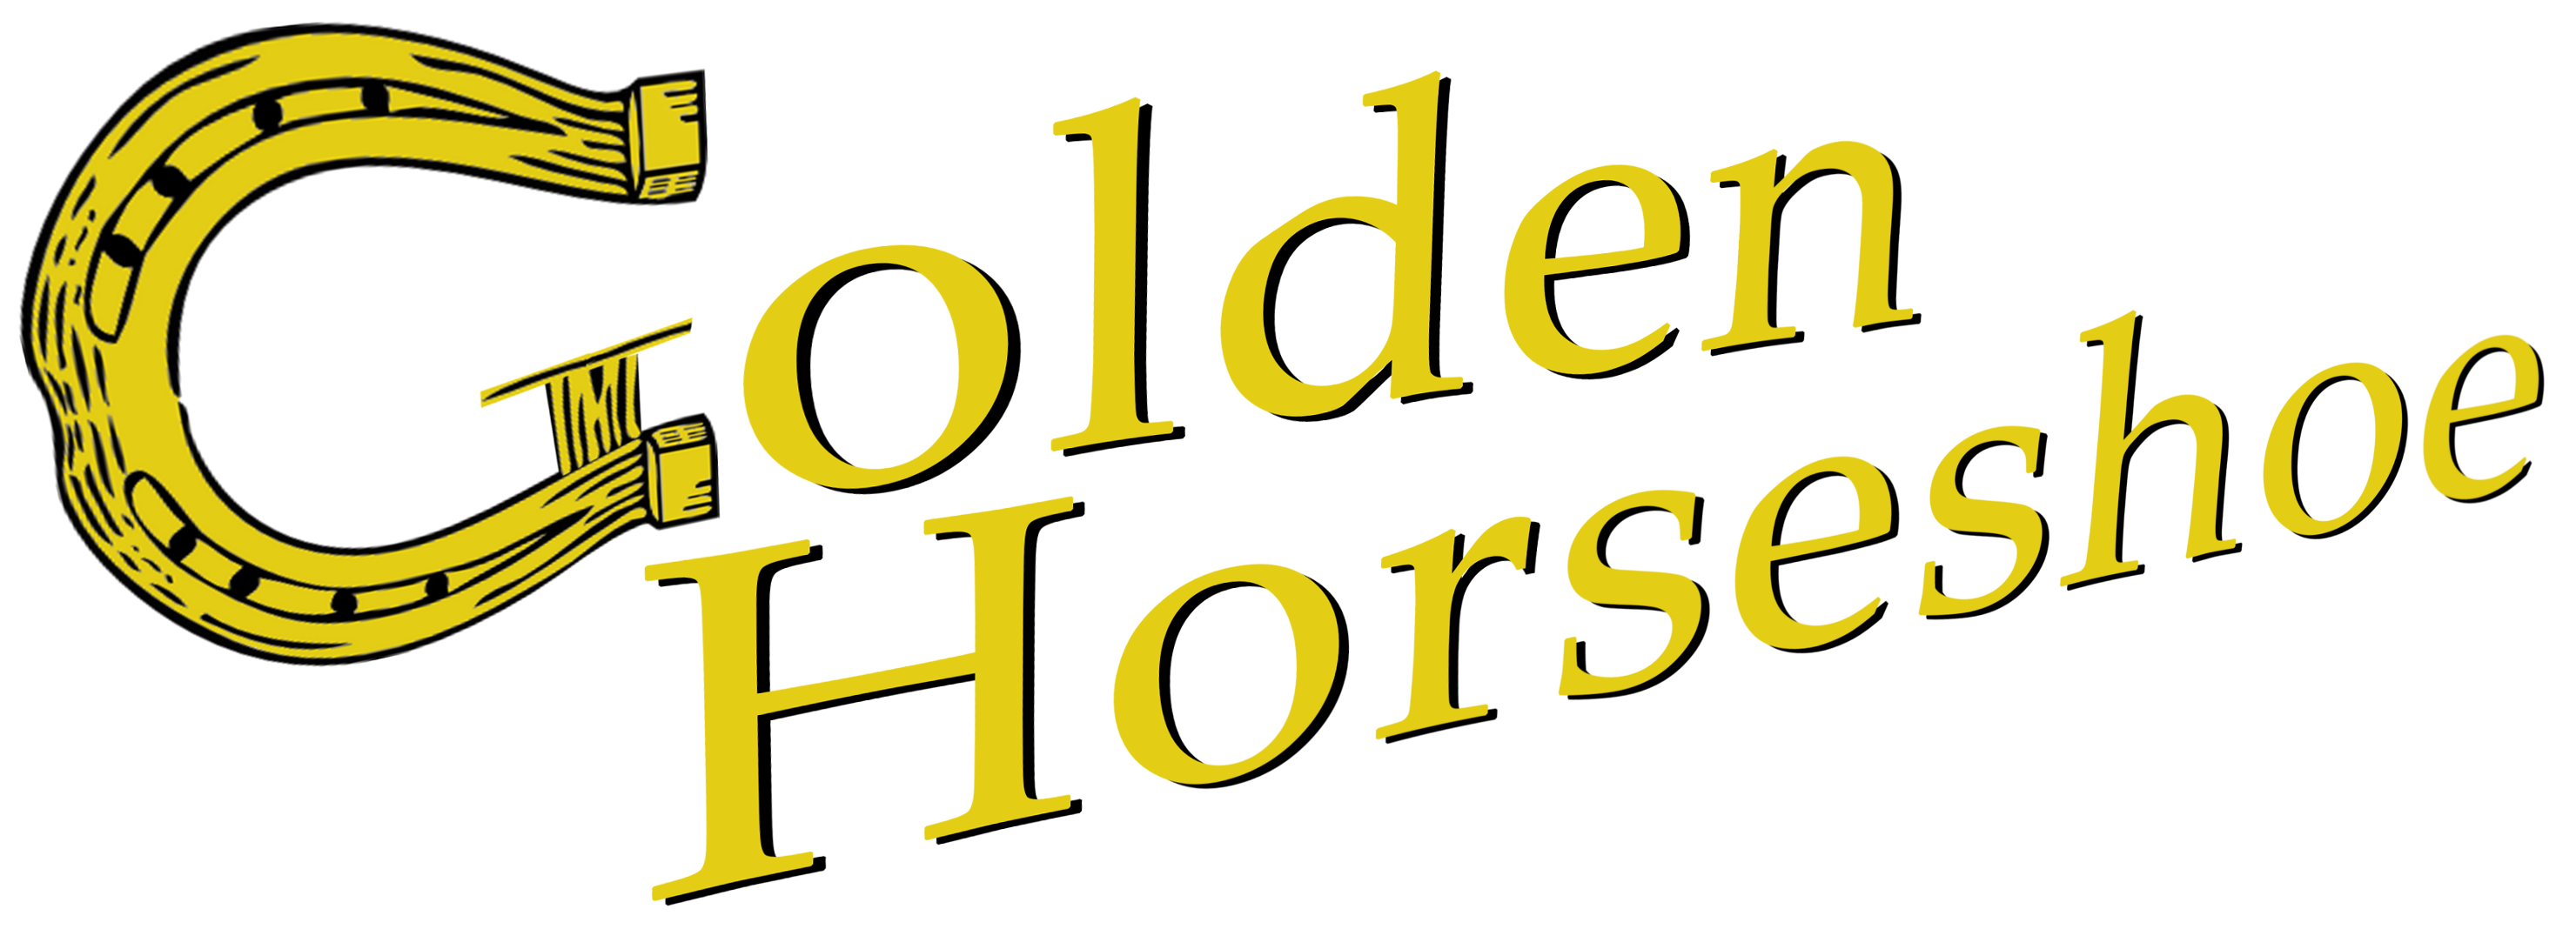 Golden Horseshoe Logo